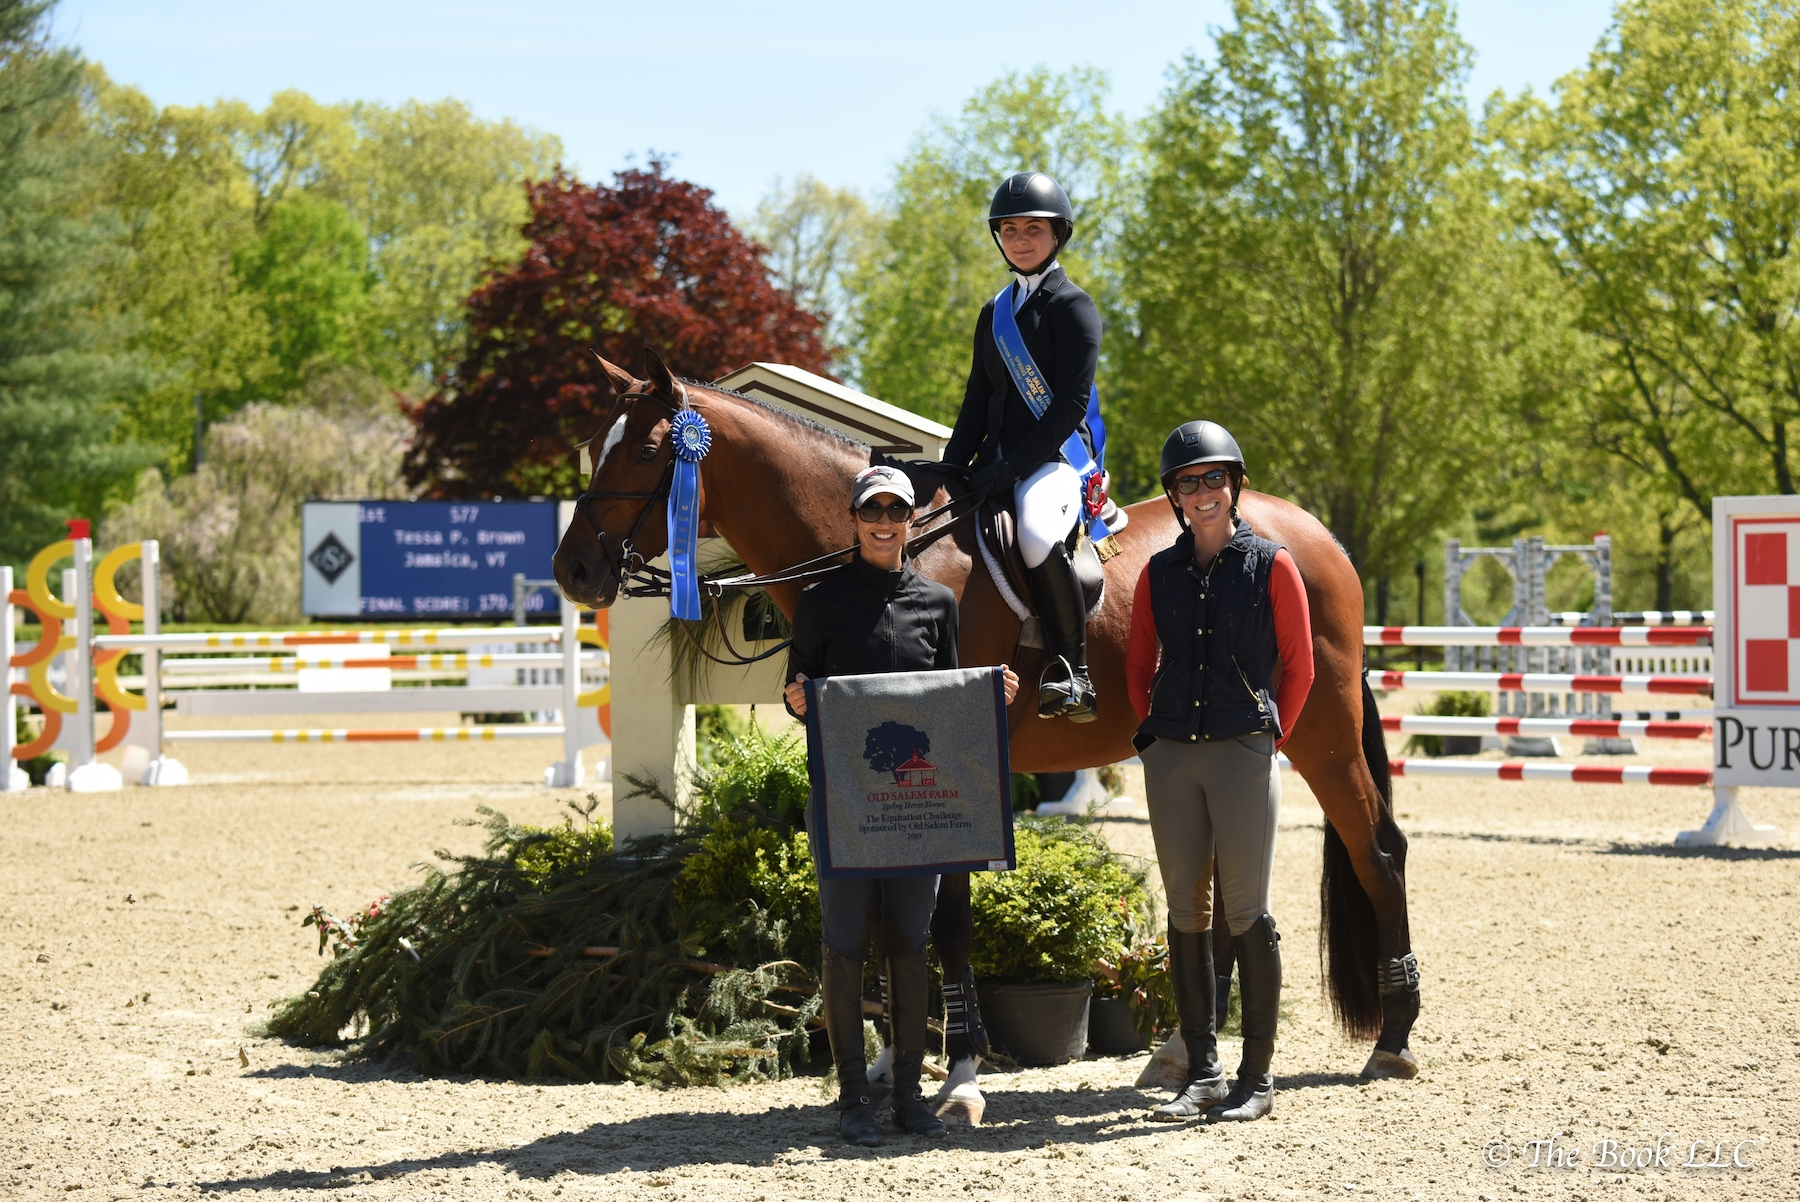 Beezie Madden Guides Garant To First Grand Prix Victory At